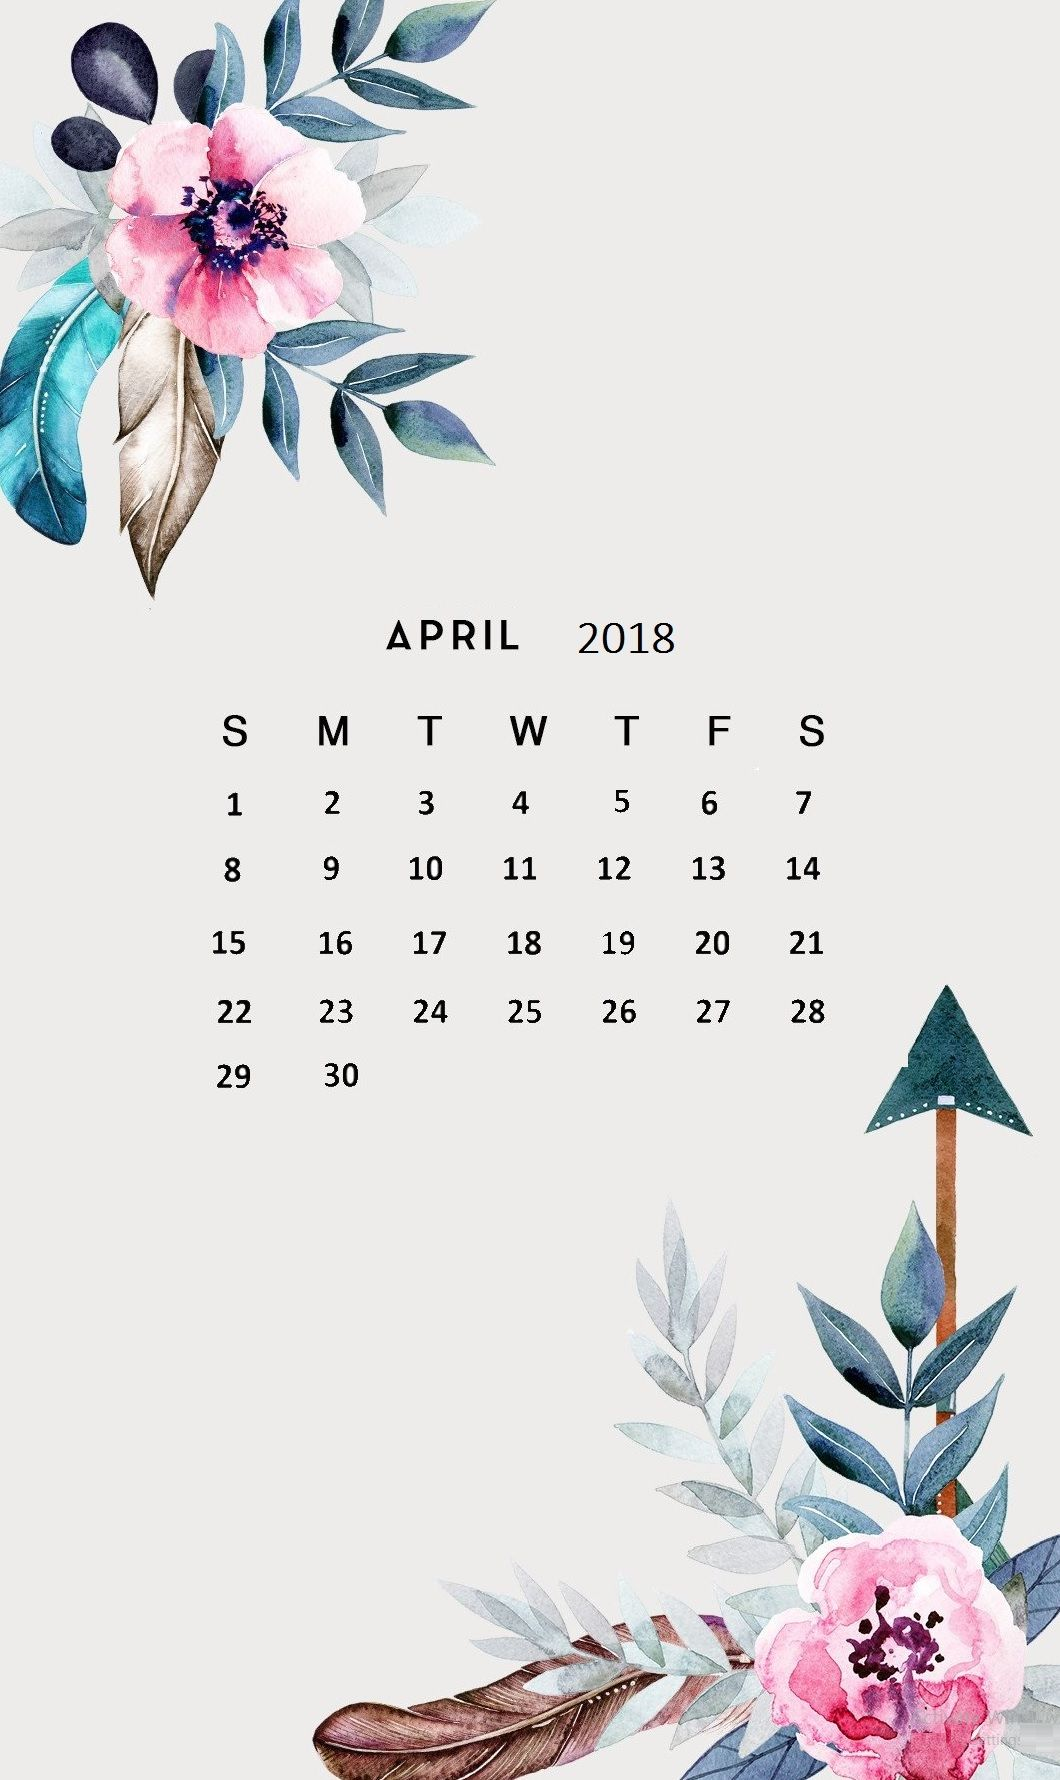 Amazing April 2018 Calendar Wallpaper to keep track of what needs 1060x1780